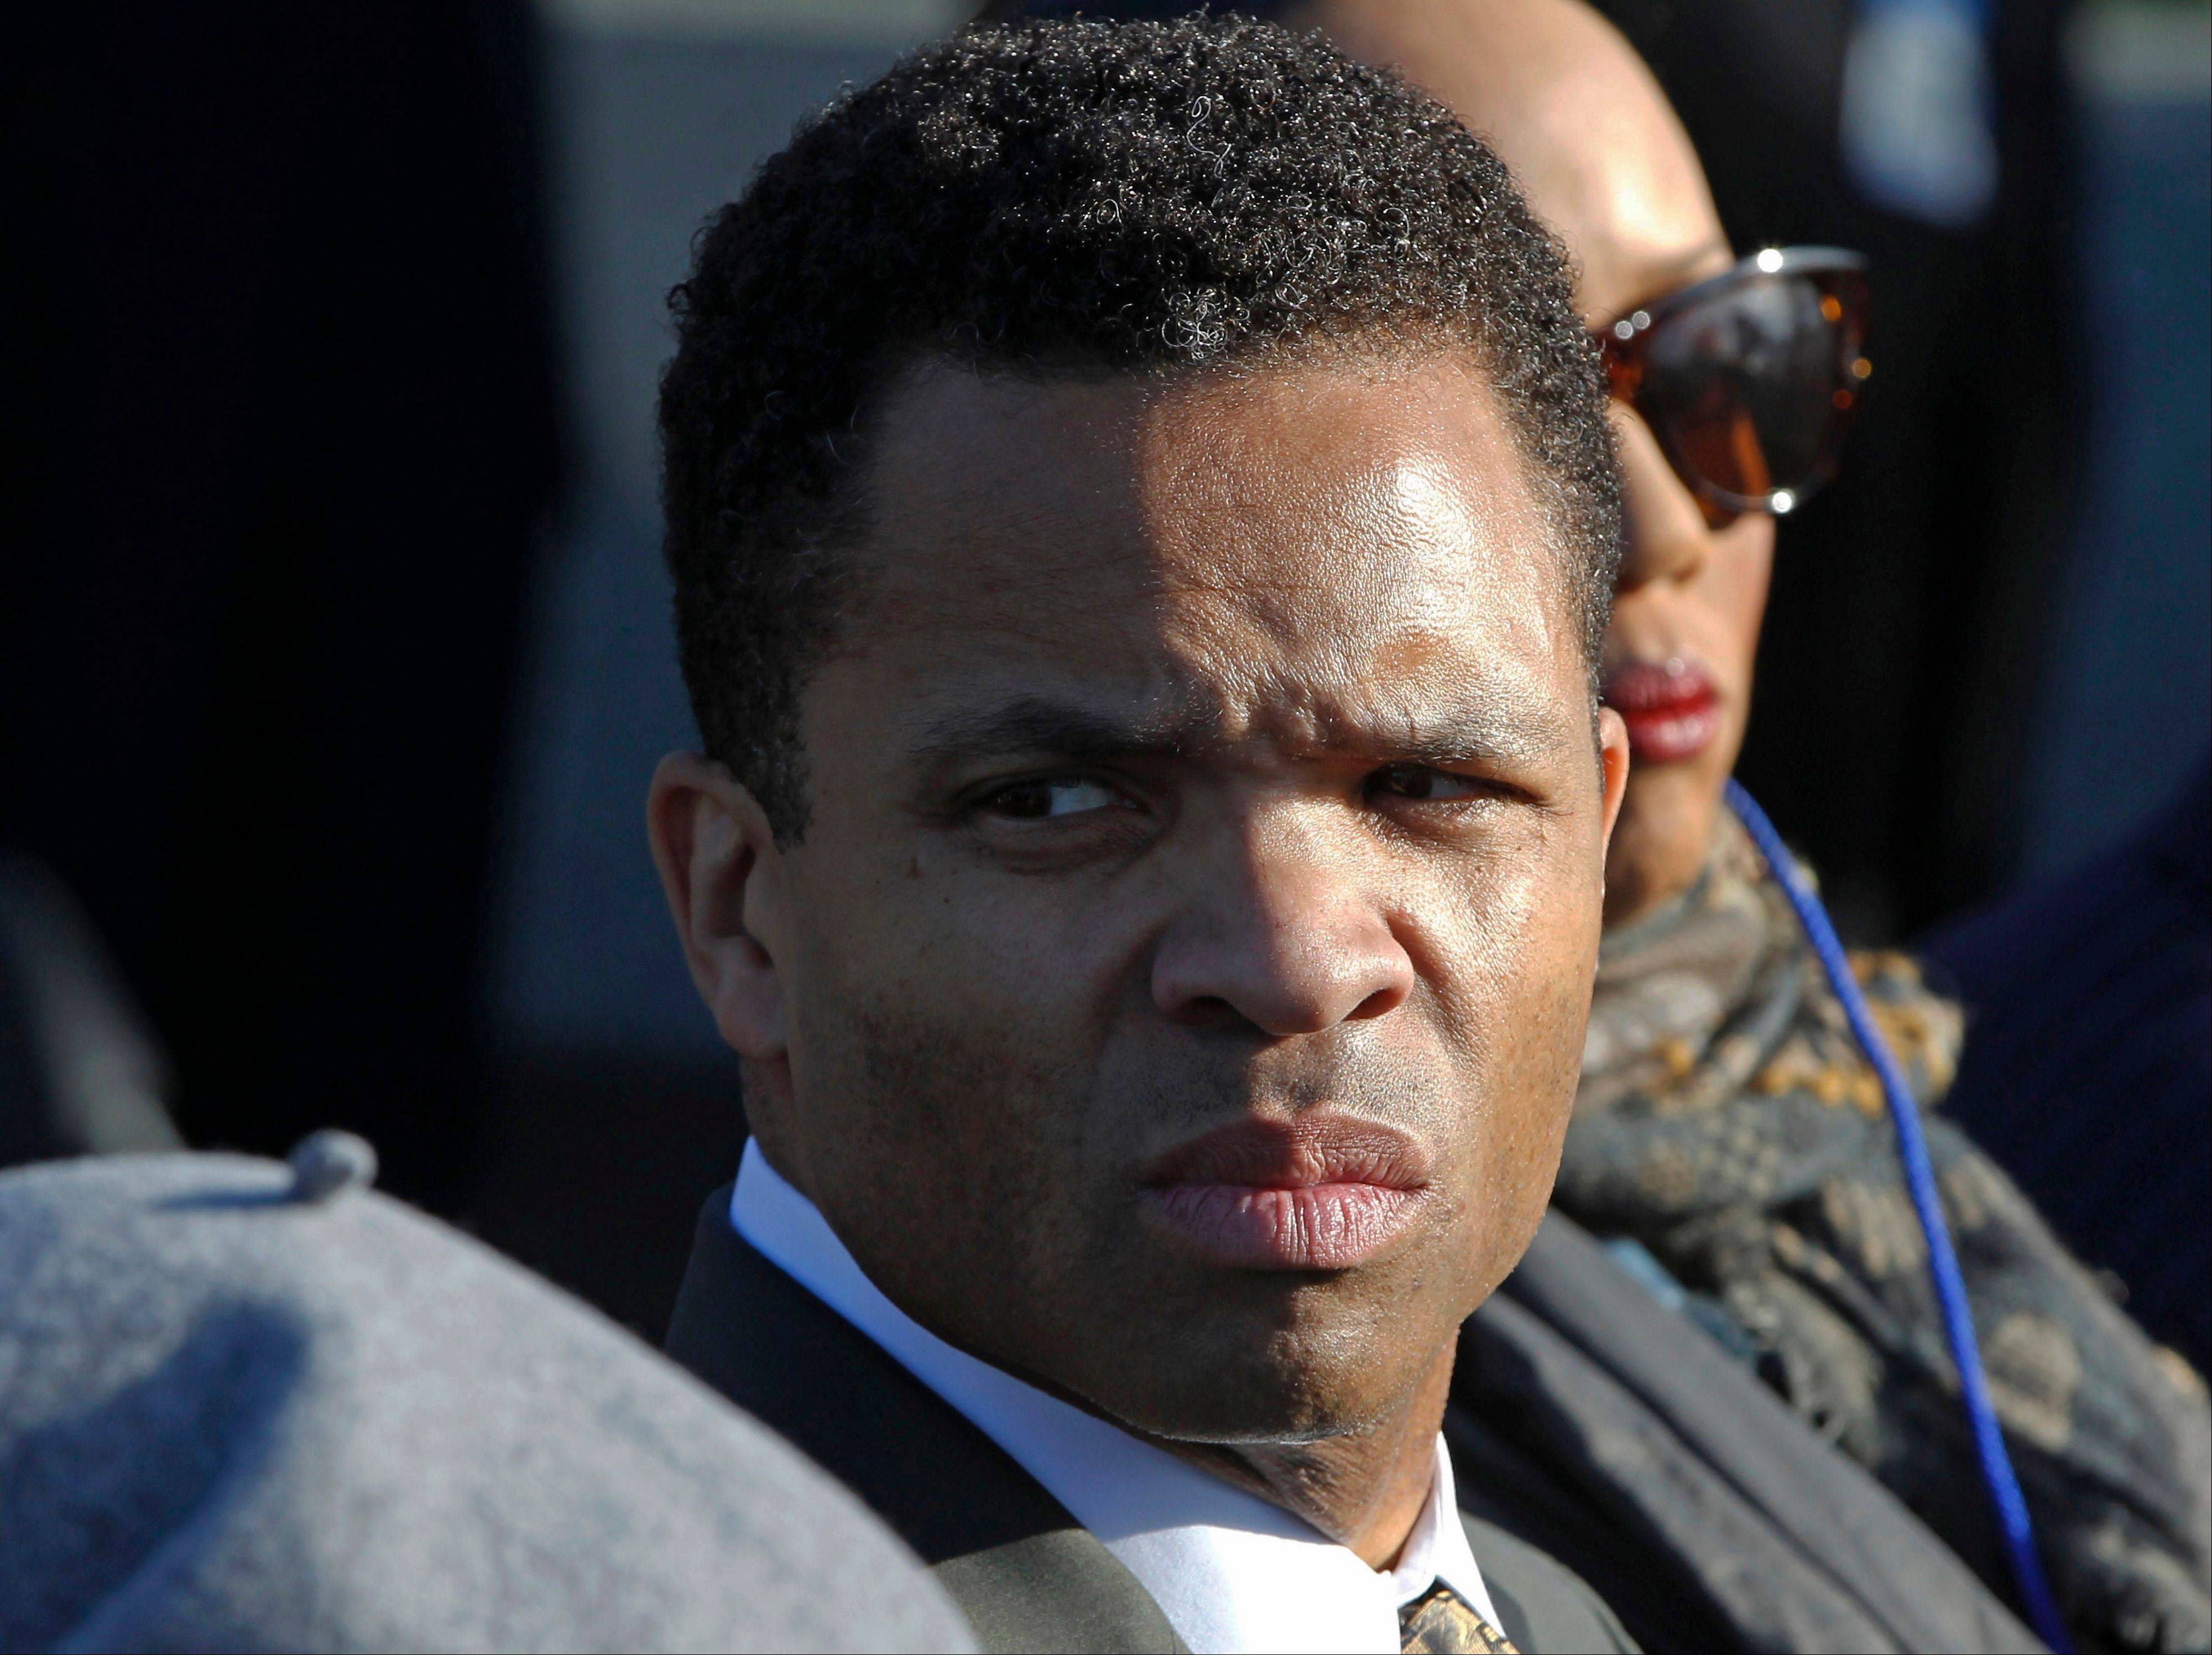 The Mayo Clinic says Congressman Jesse Jackson Jr. is being treated for depression at its hospital in Rochester, Minn.